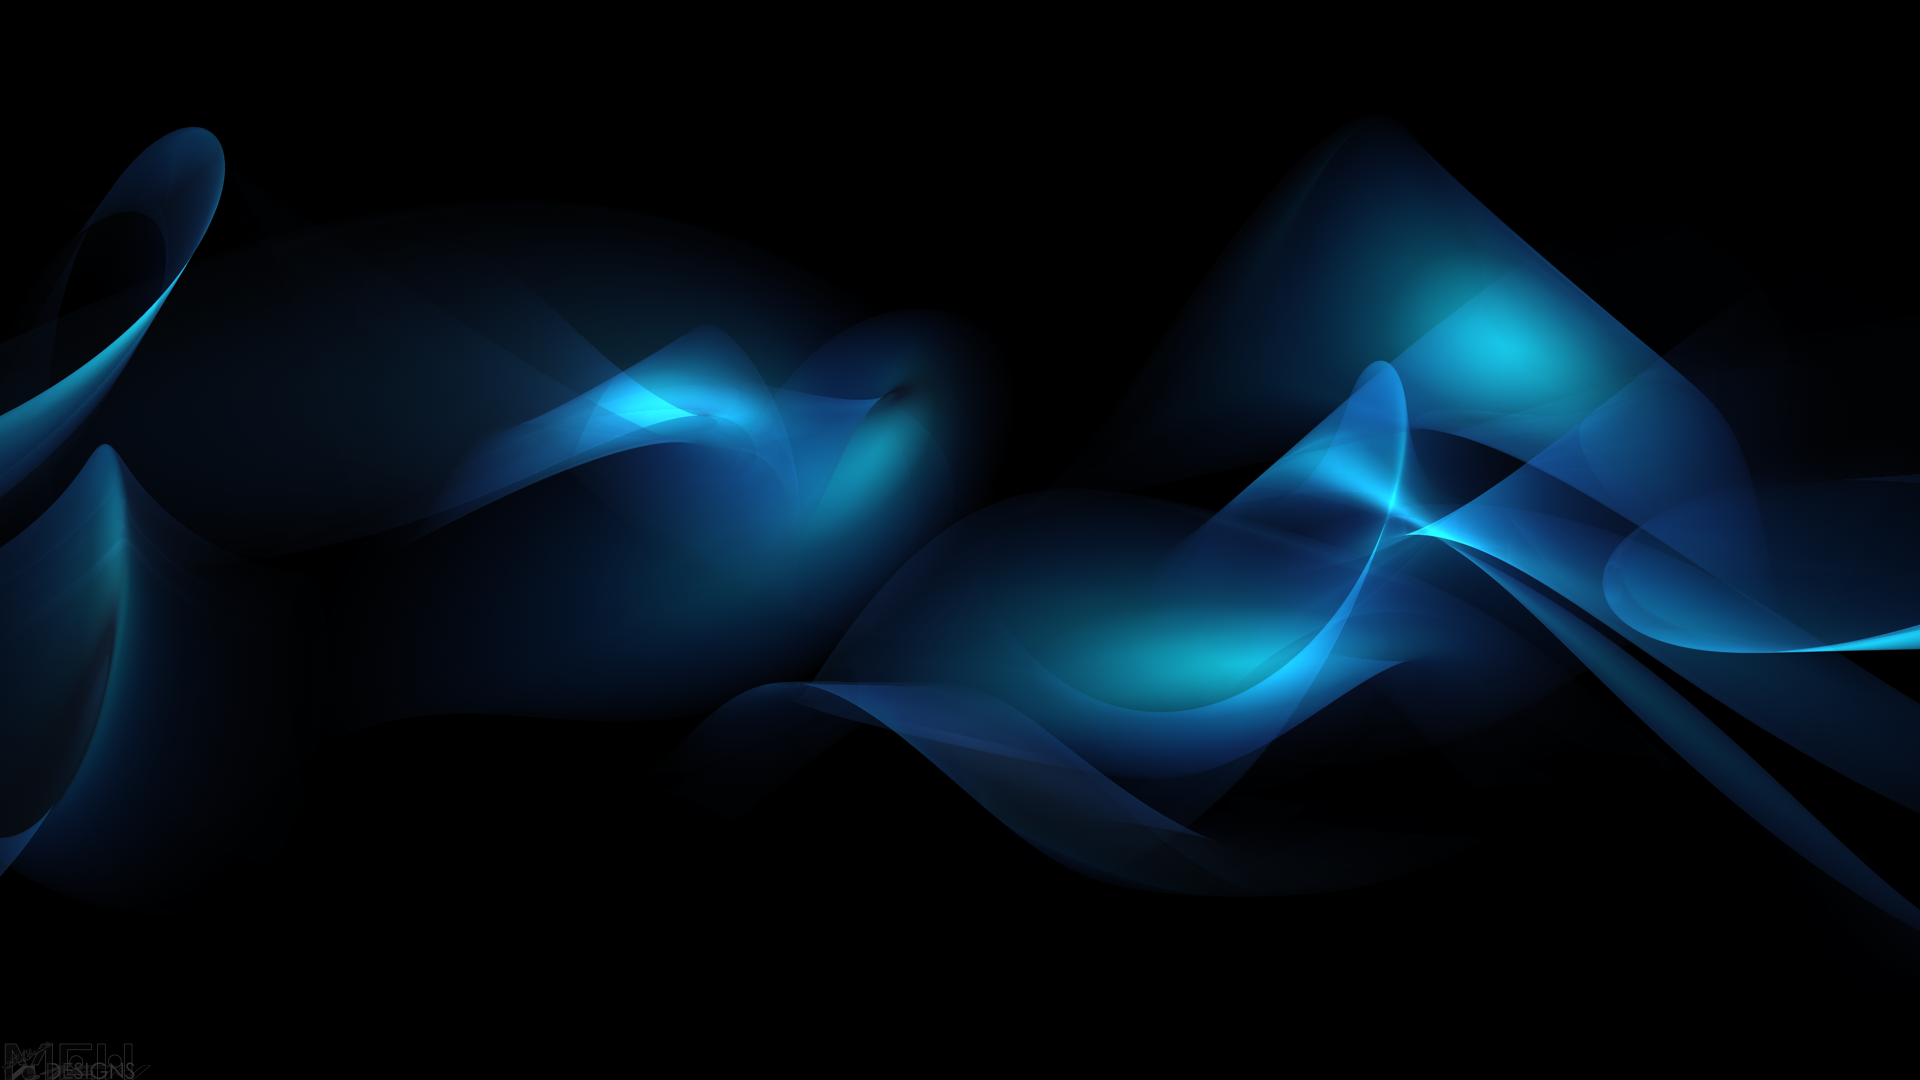 Wallpaper HD Abstract Blue